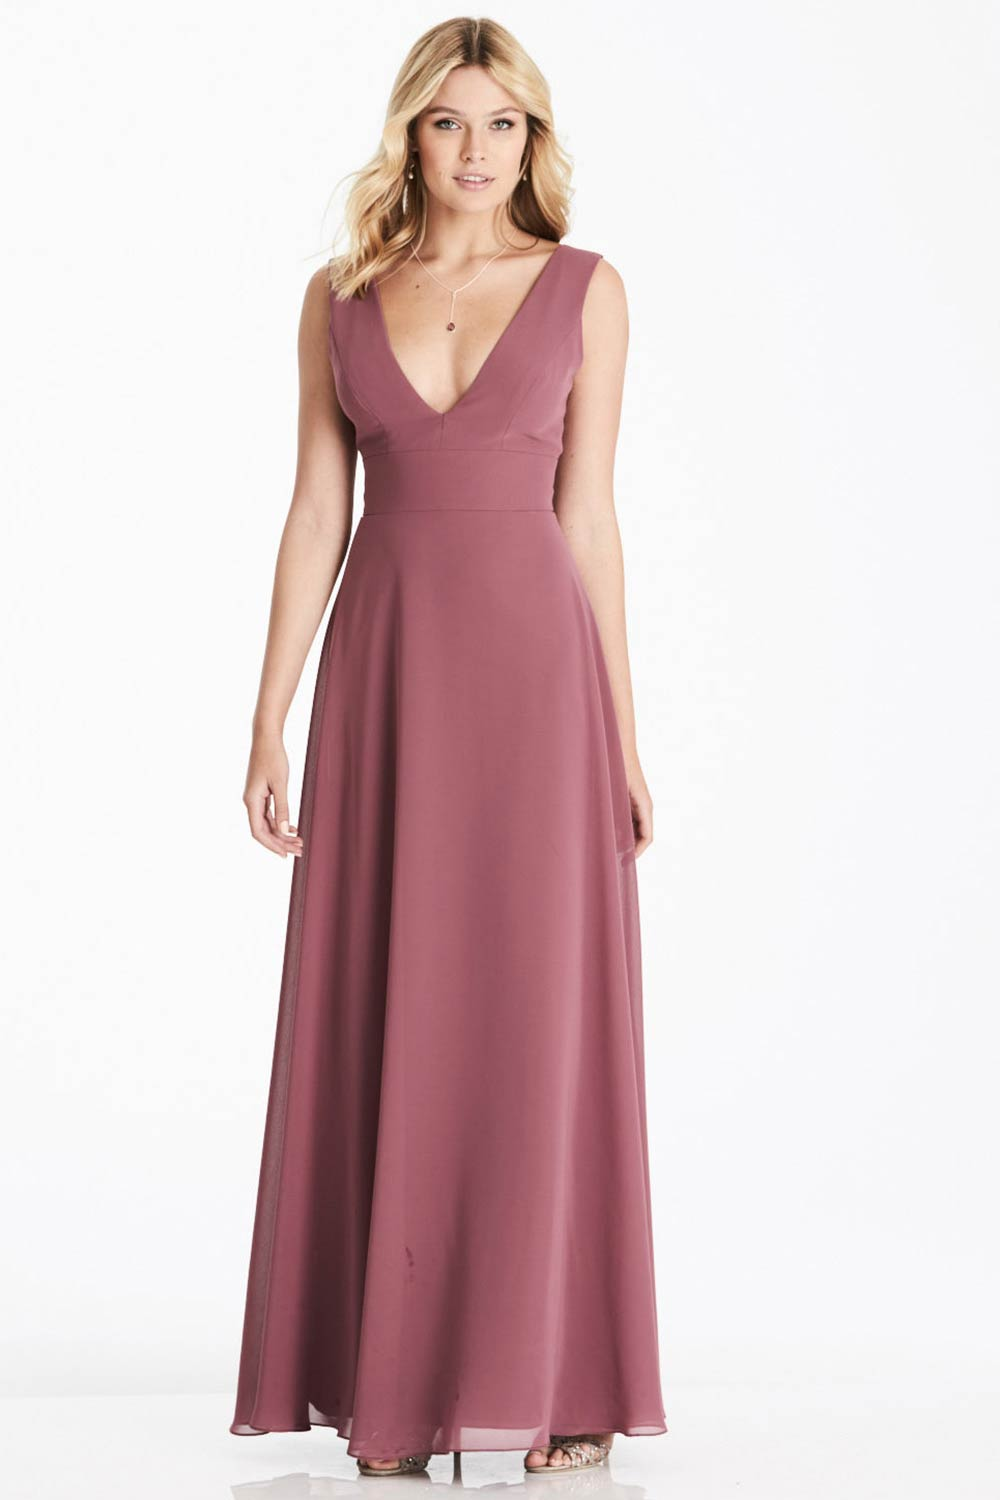 bridesmaid-dresses-dessy-26007